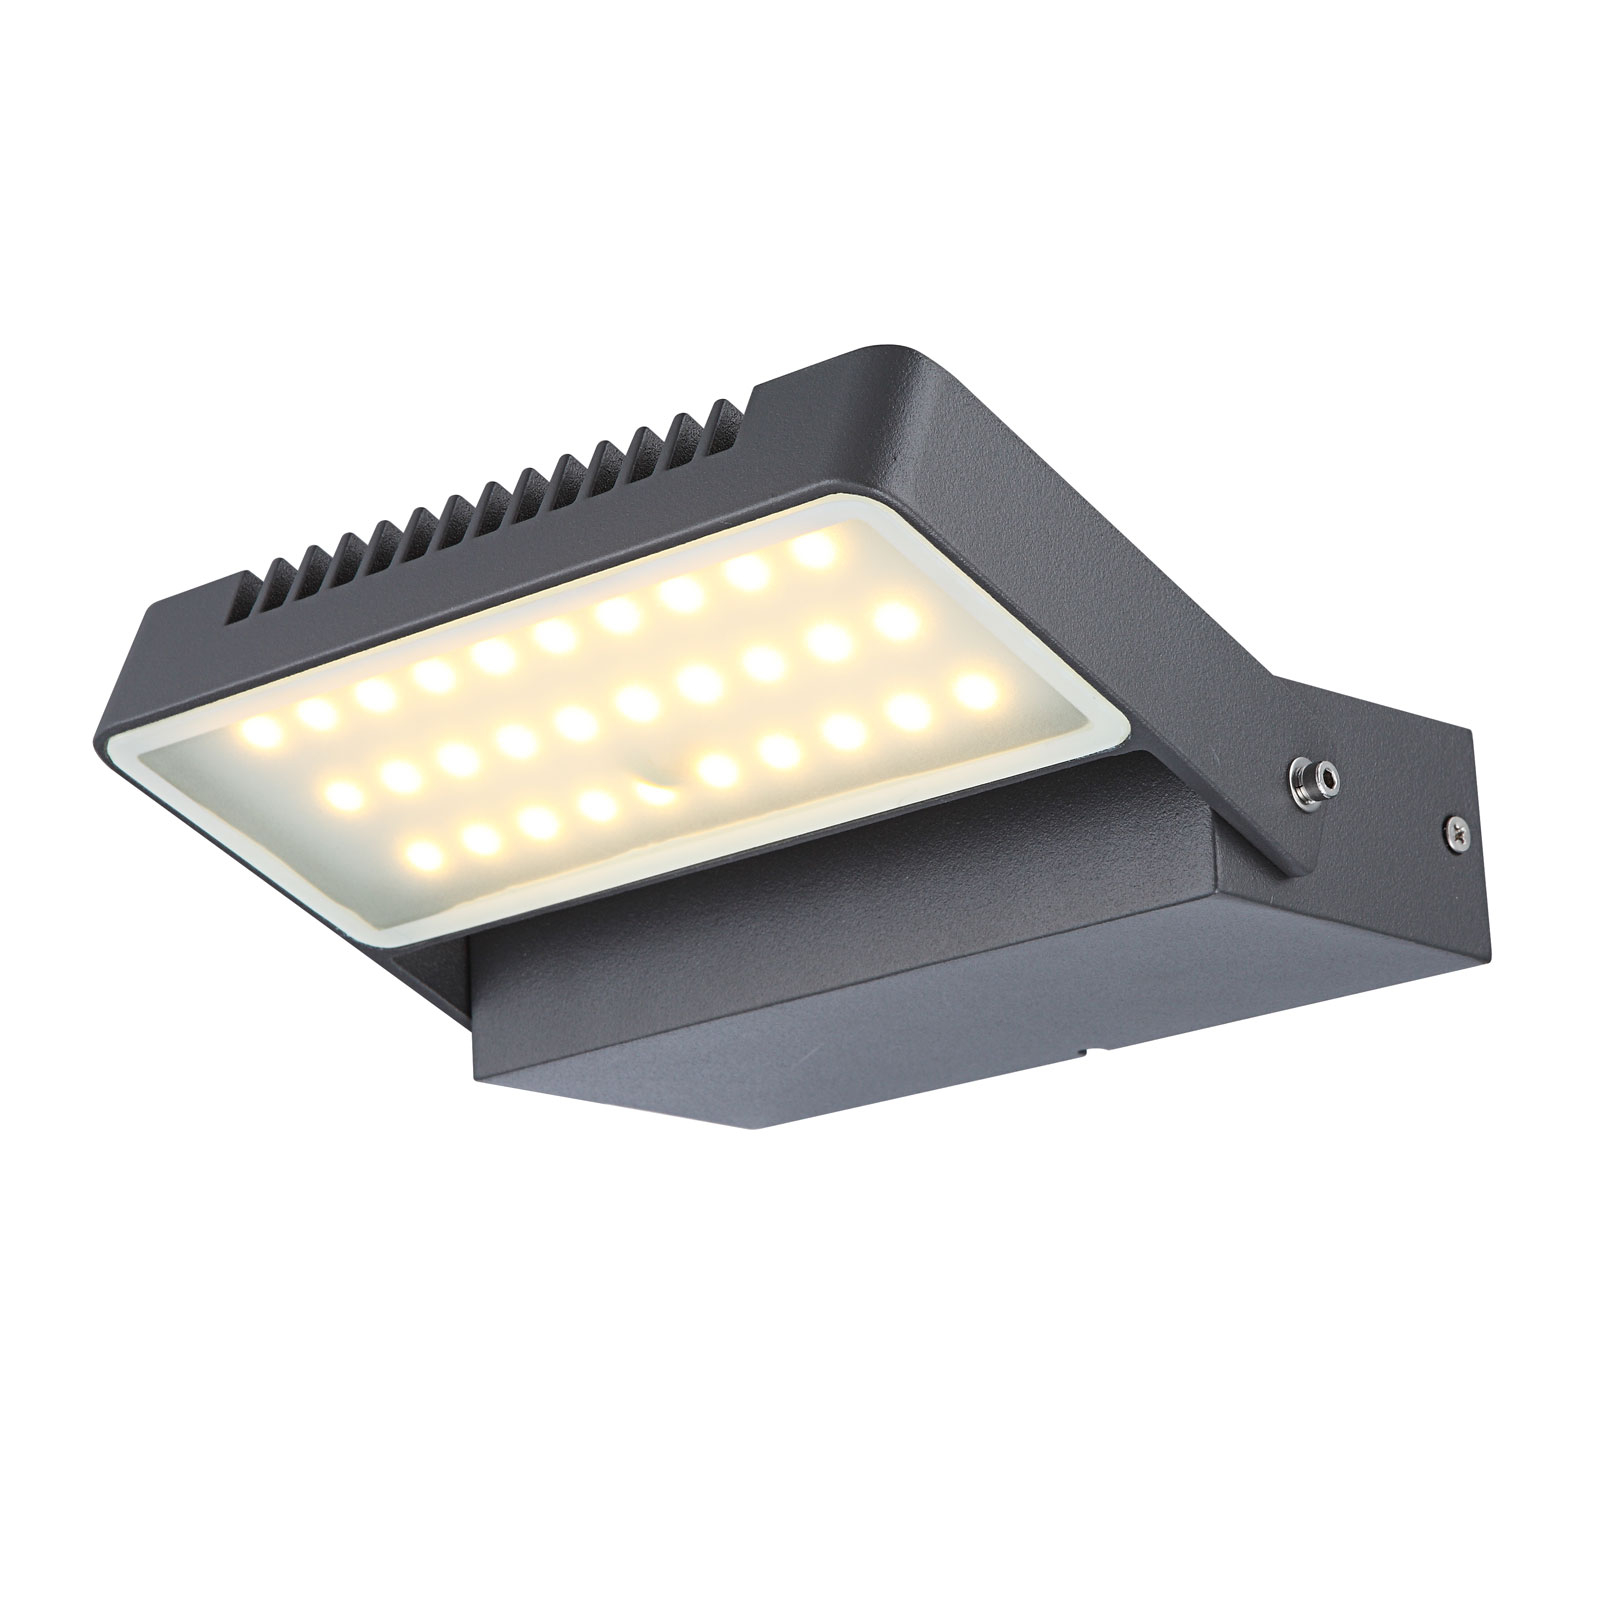 LED buitenwandspot Chana, beweegbare reflectorlamp